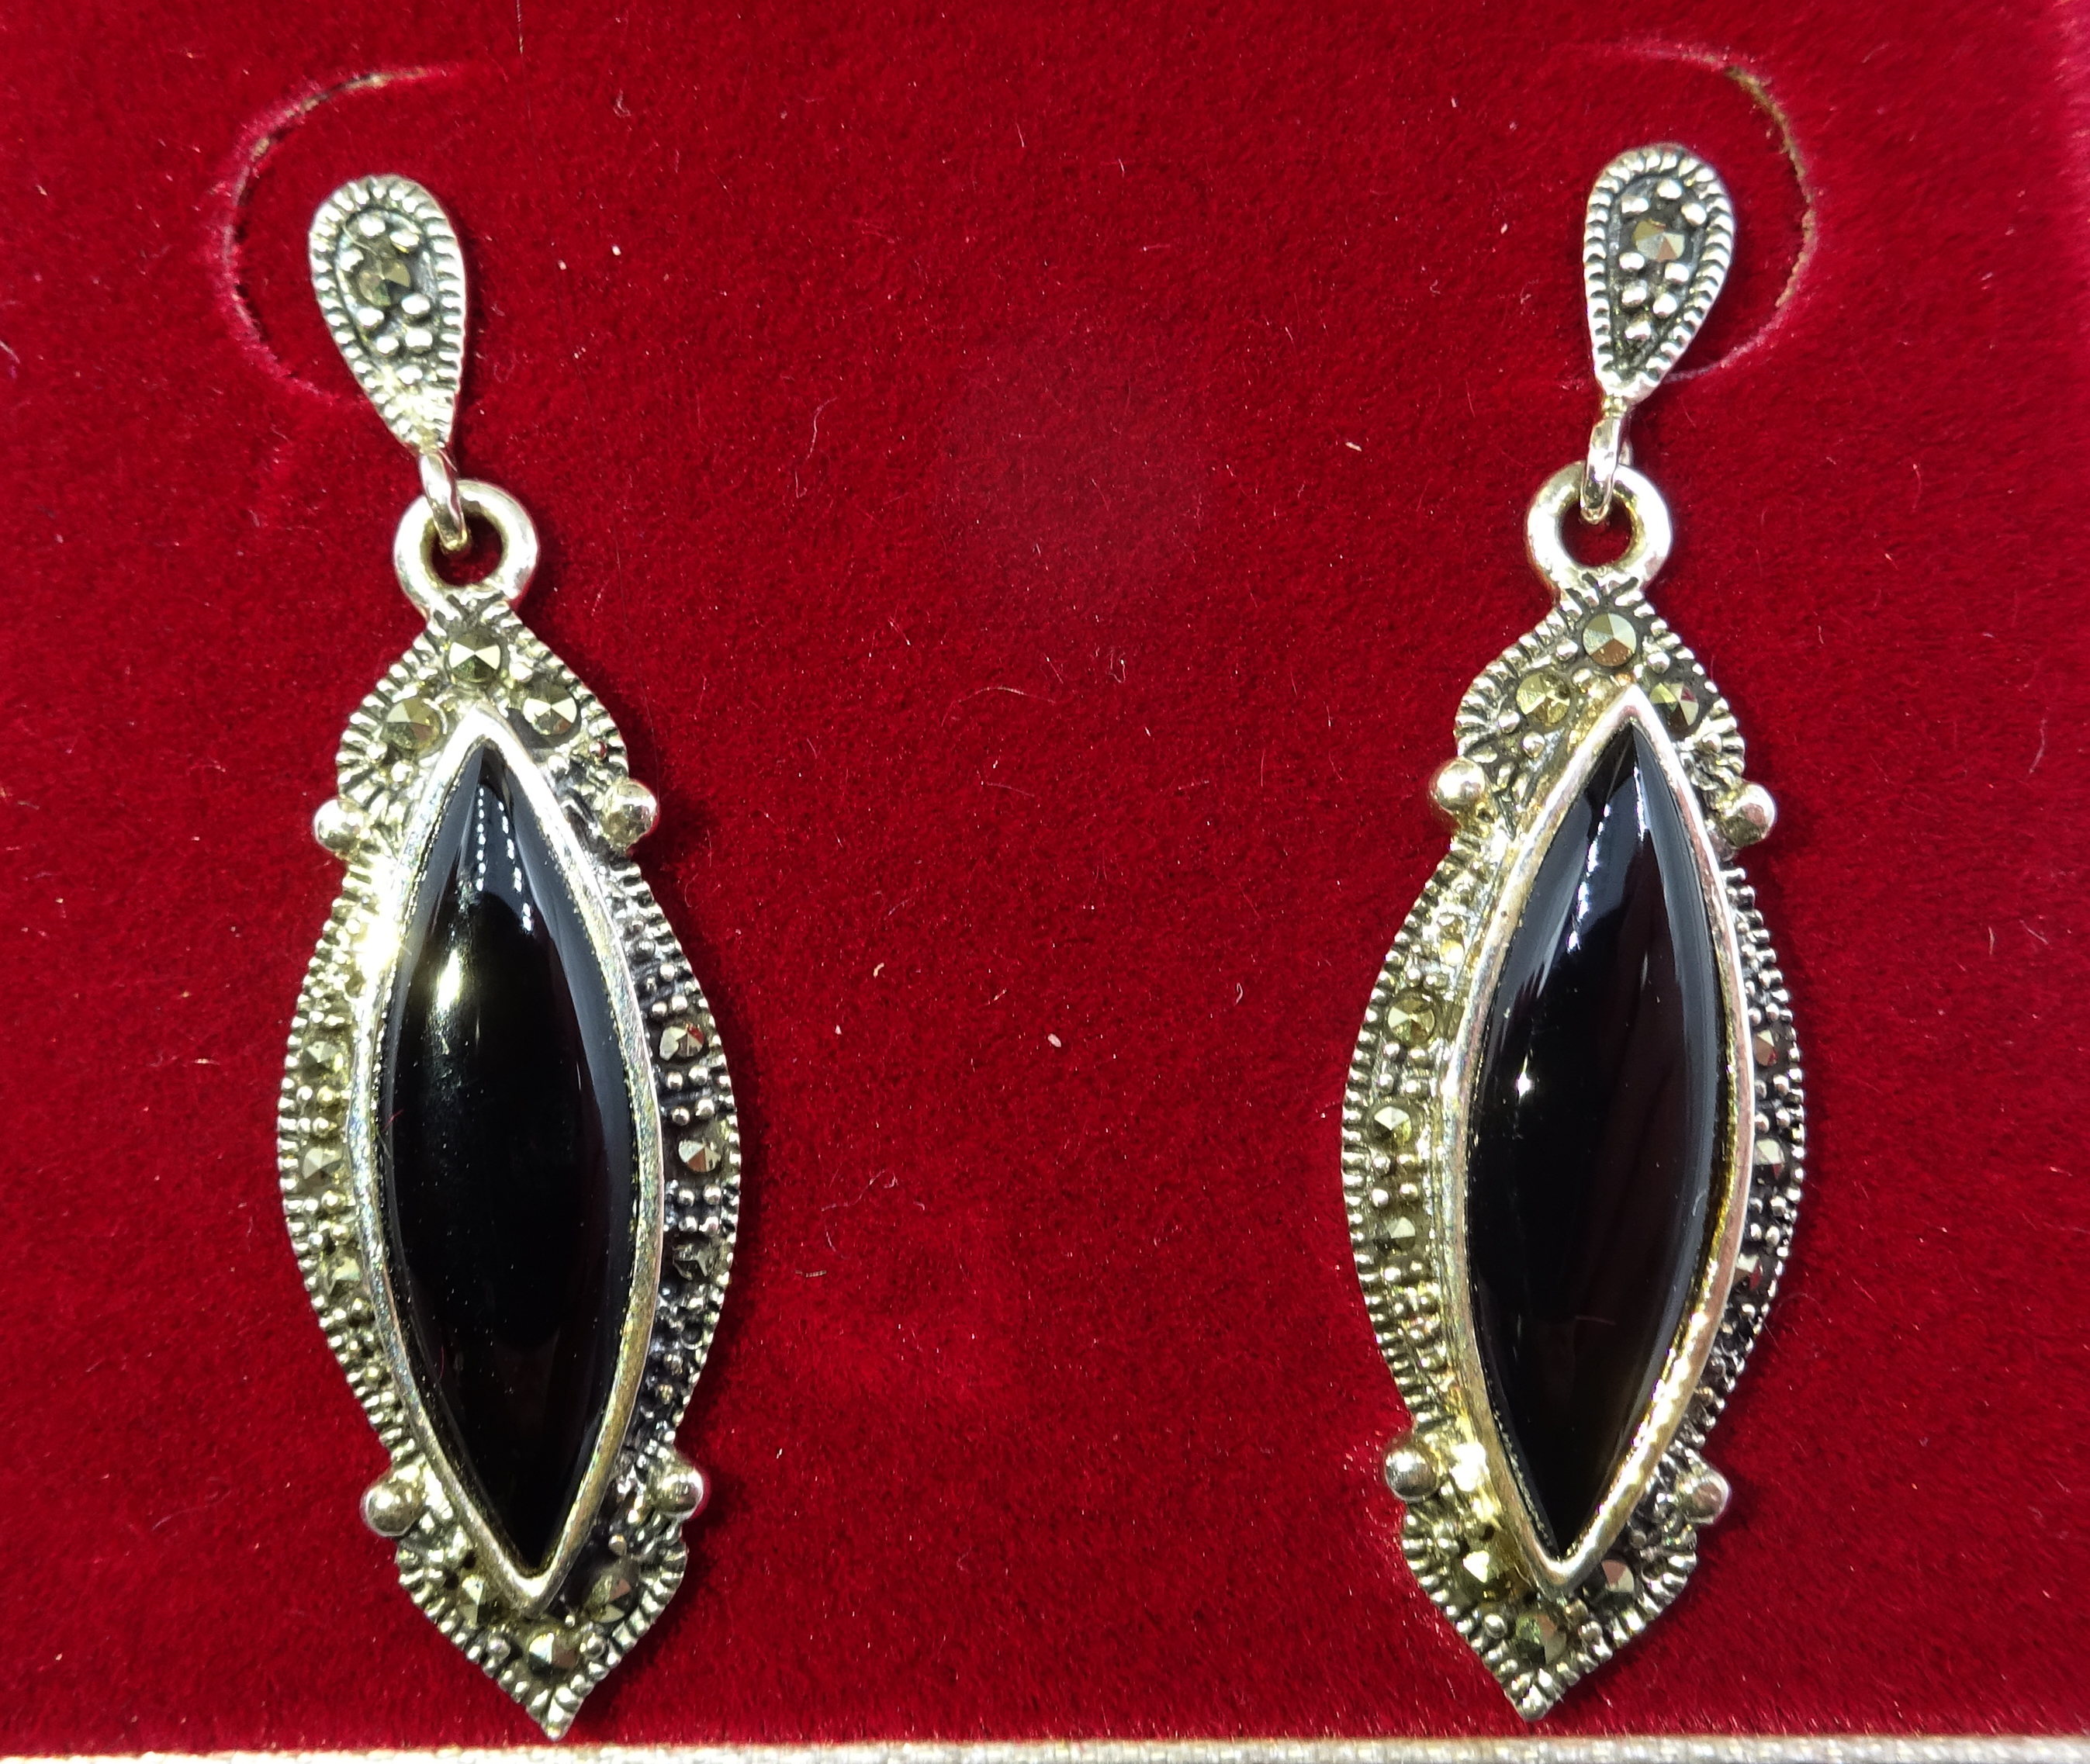 Lot 1033 - Silver black onyx and marcasite pendant earrings,